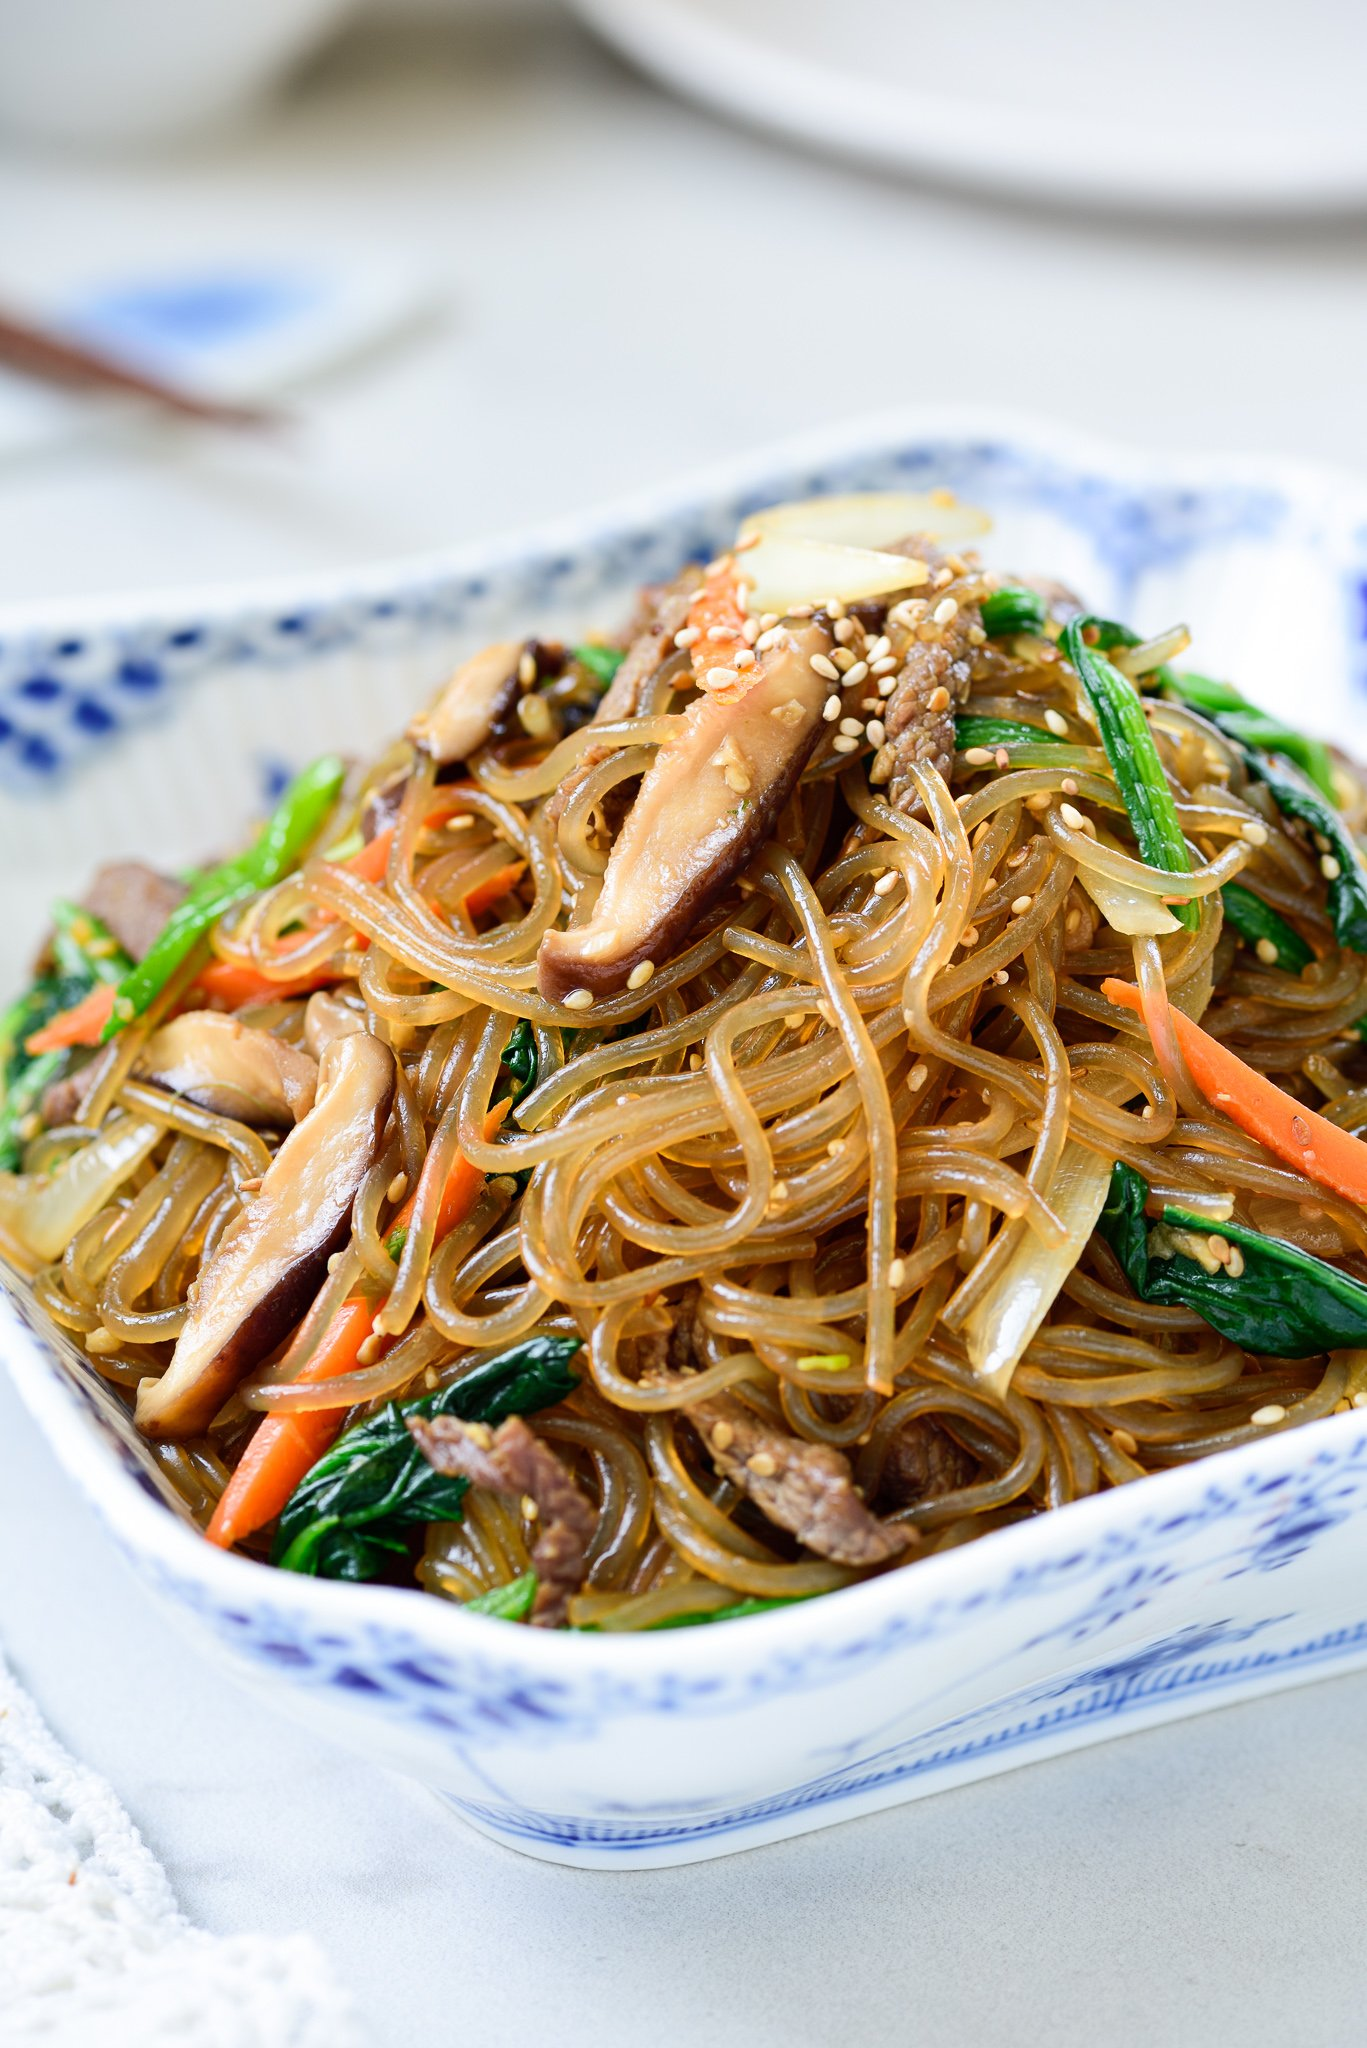 Stir-fried glass noodles with beef and vegetables in a square bowl